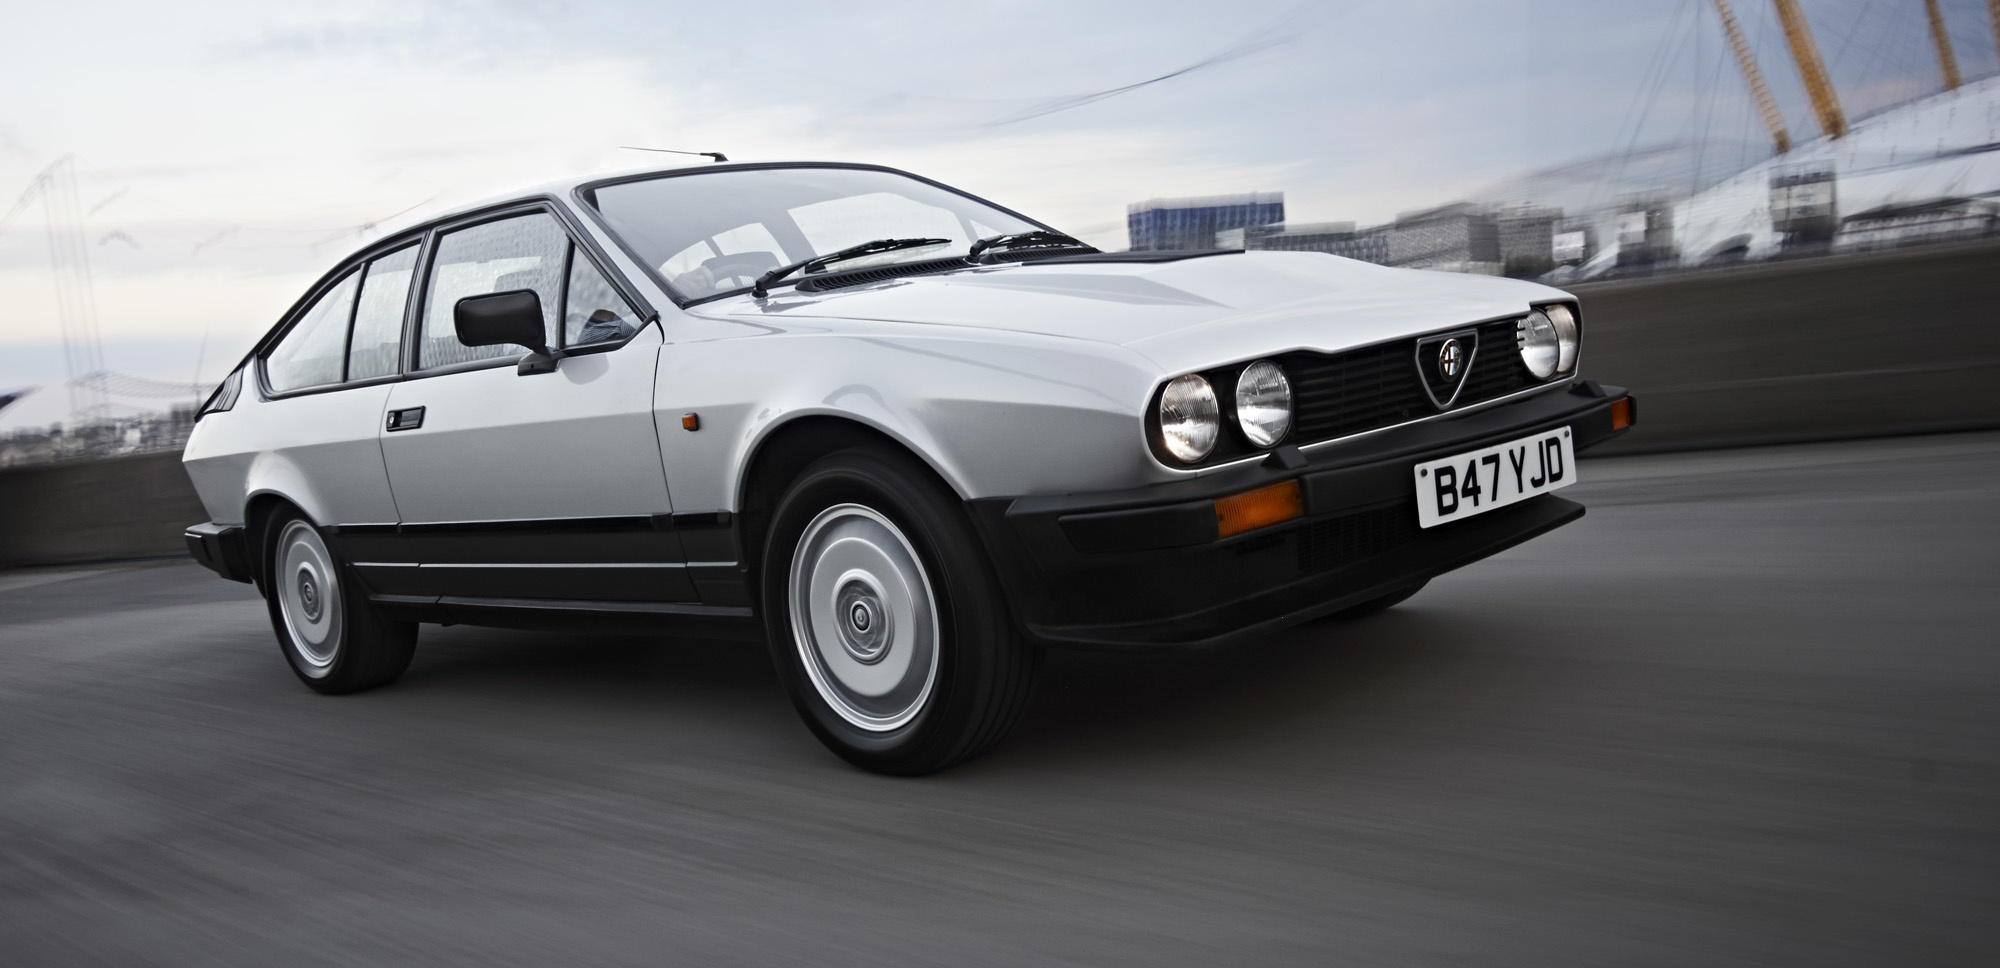 A fine road car, the Alfa Romeo GTV6 became an amazingly potent race and rally weapon